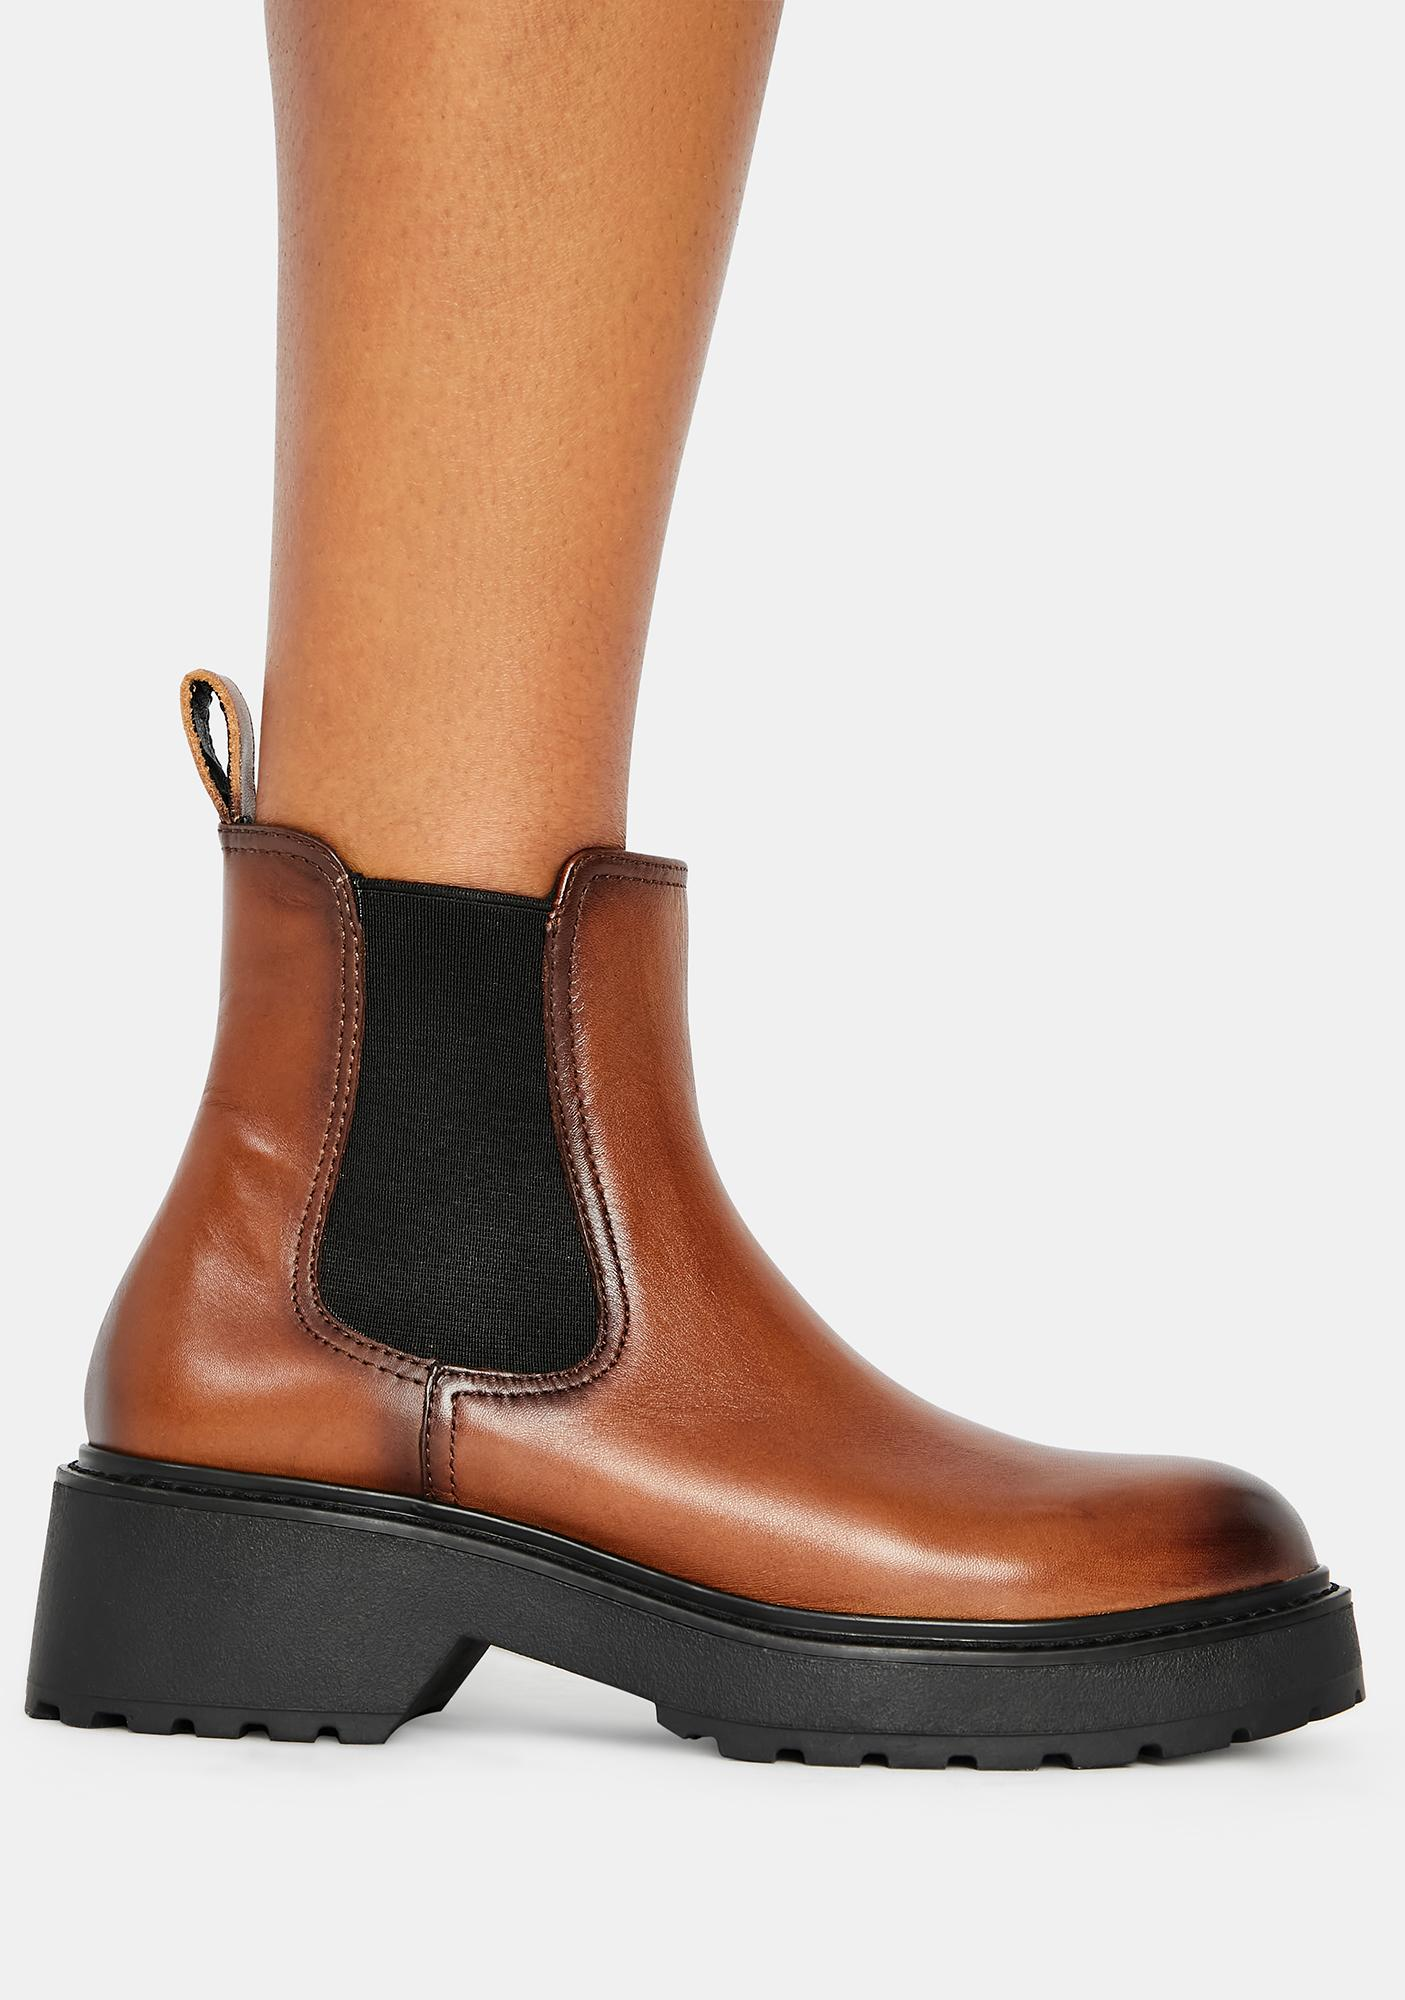 Steve Madden Cognac Trap Leather Chelsea Boots